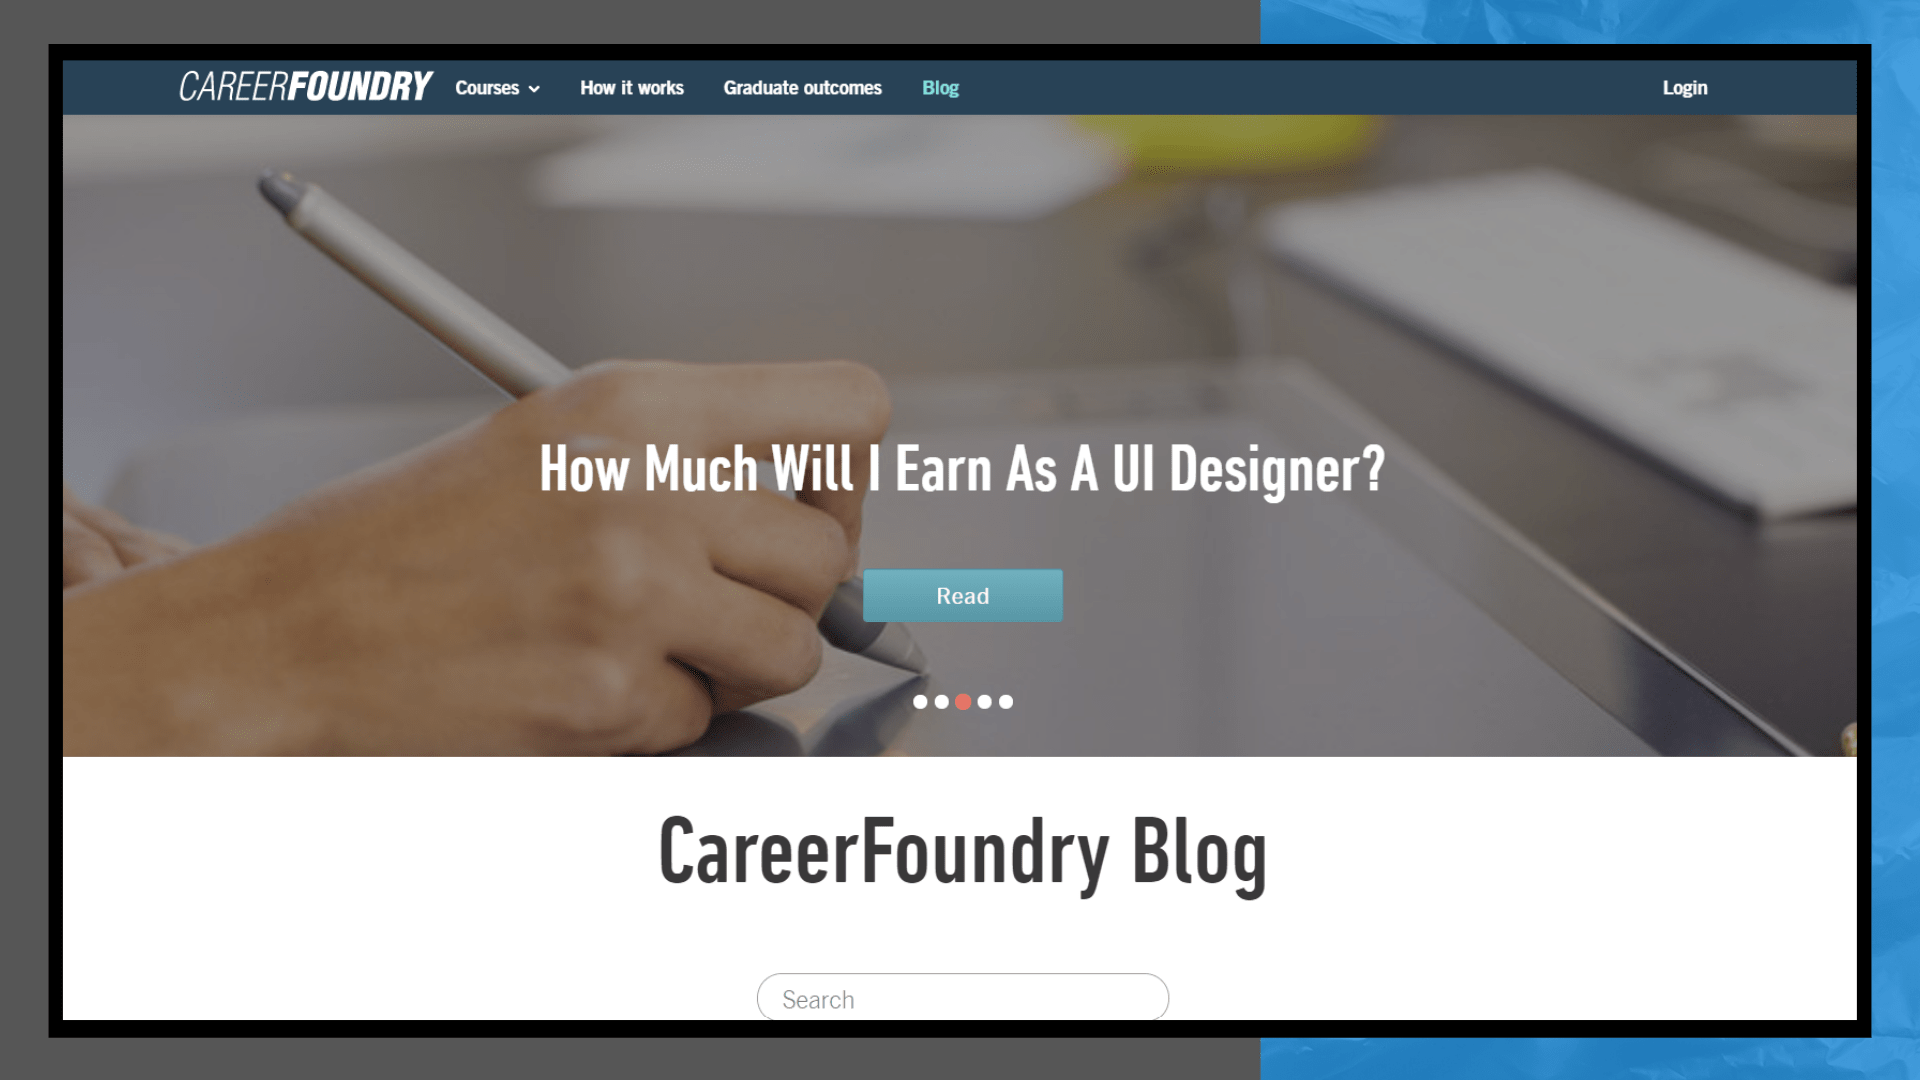 careerfoundry.com